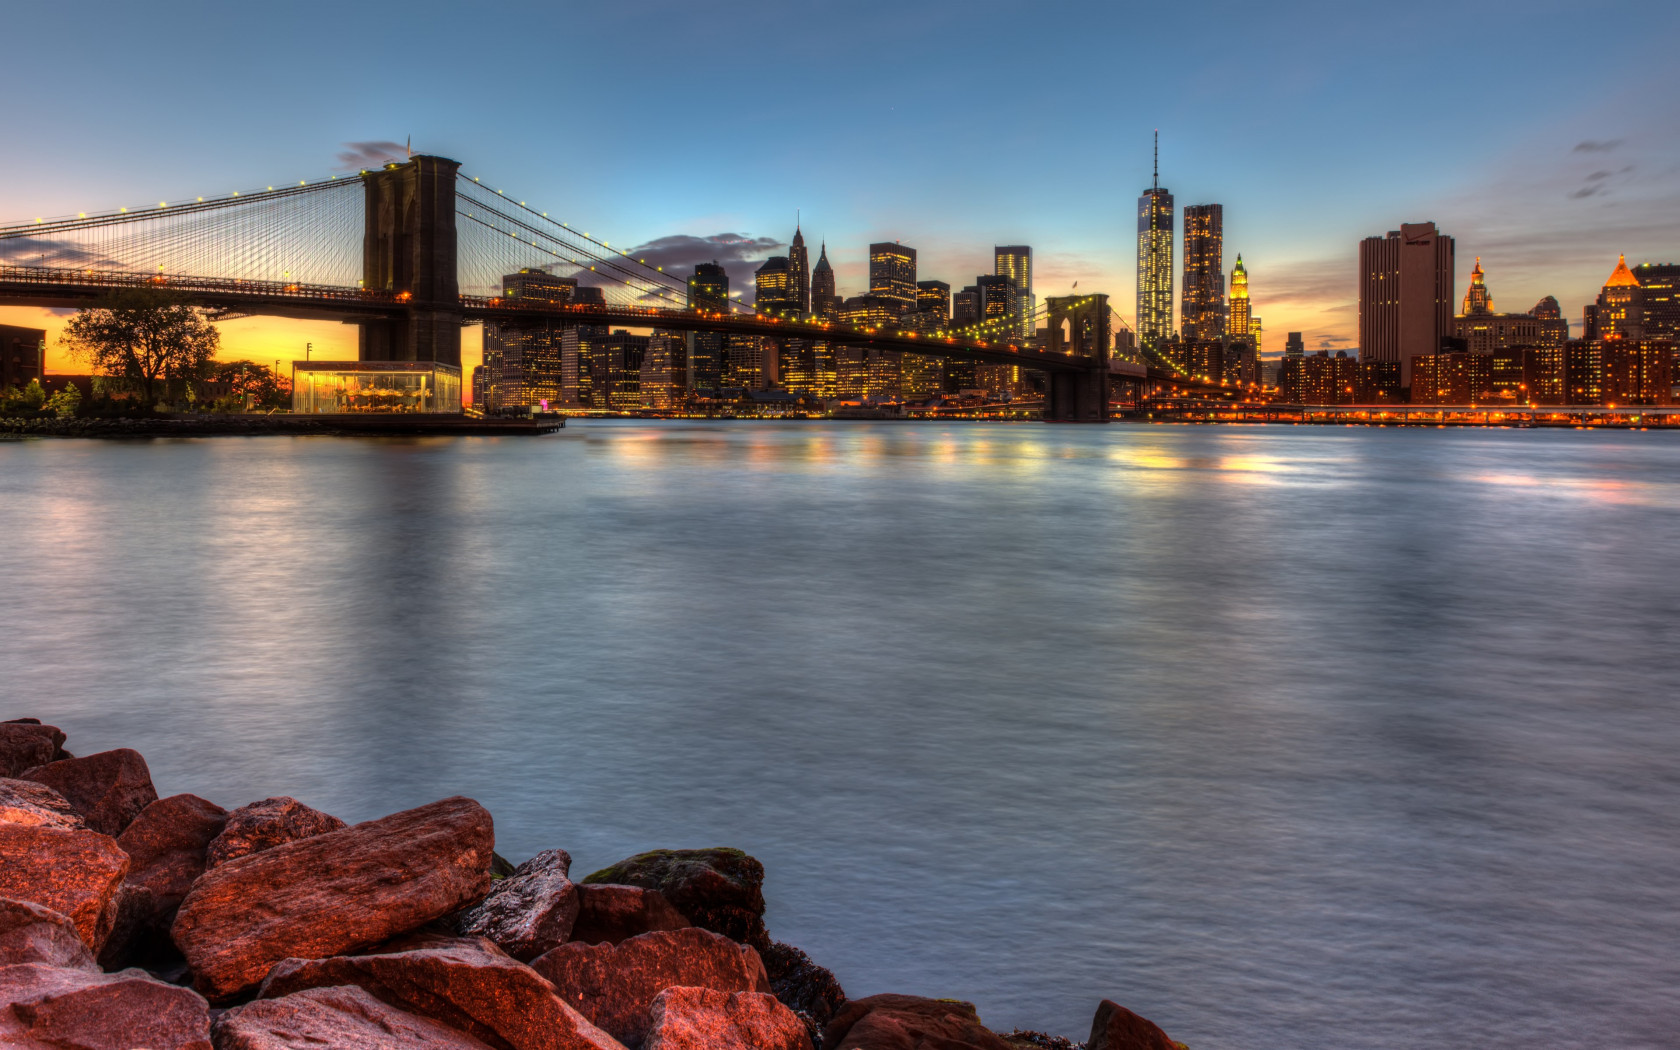 Brooklyn Bridge, NY, USA wallpaper 1680x1050